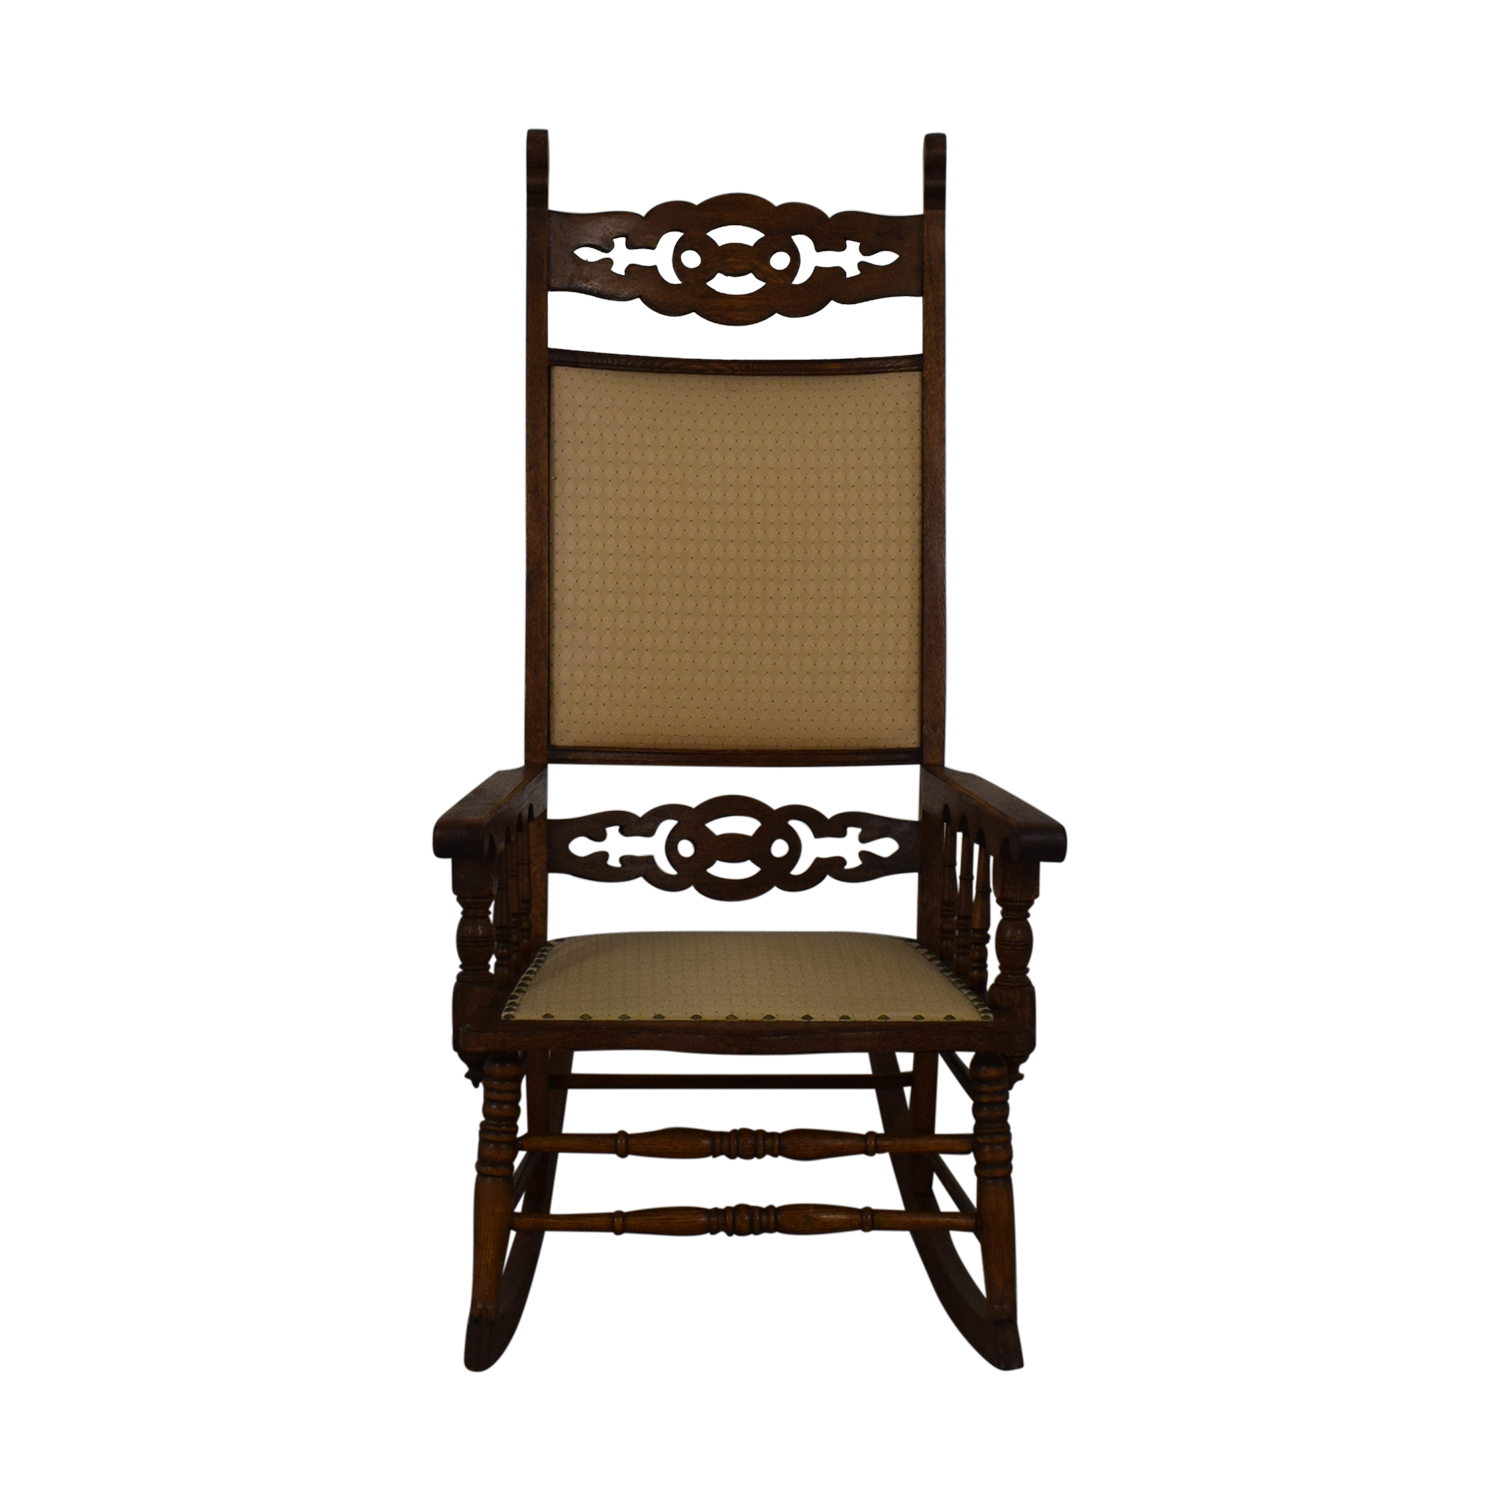 Rustic Rocking Chair price